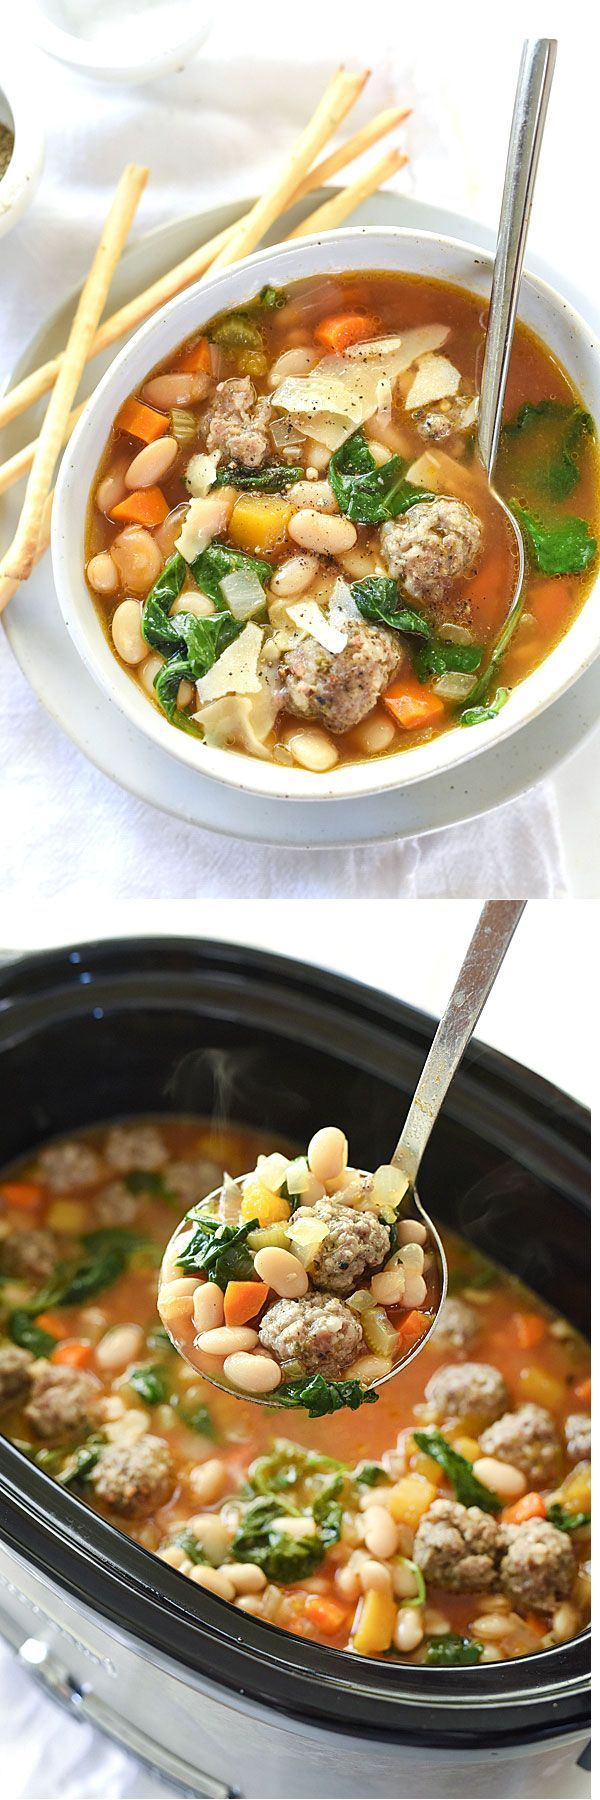 Slow Cooker Tuscan White Bean and Sausage Soup - There's no browning needed before making this crockpot favorite and the meatballs make it even better.